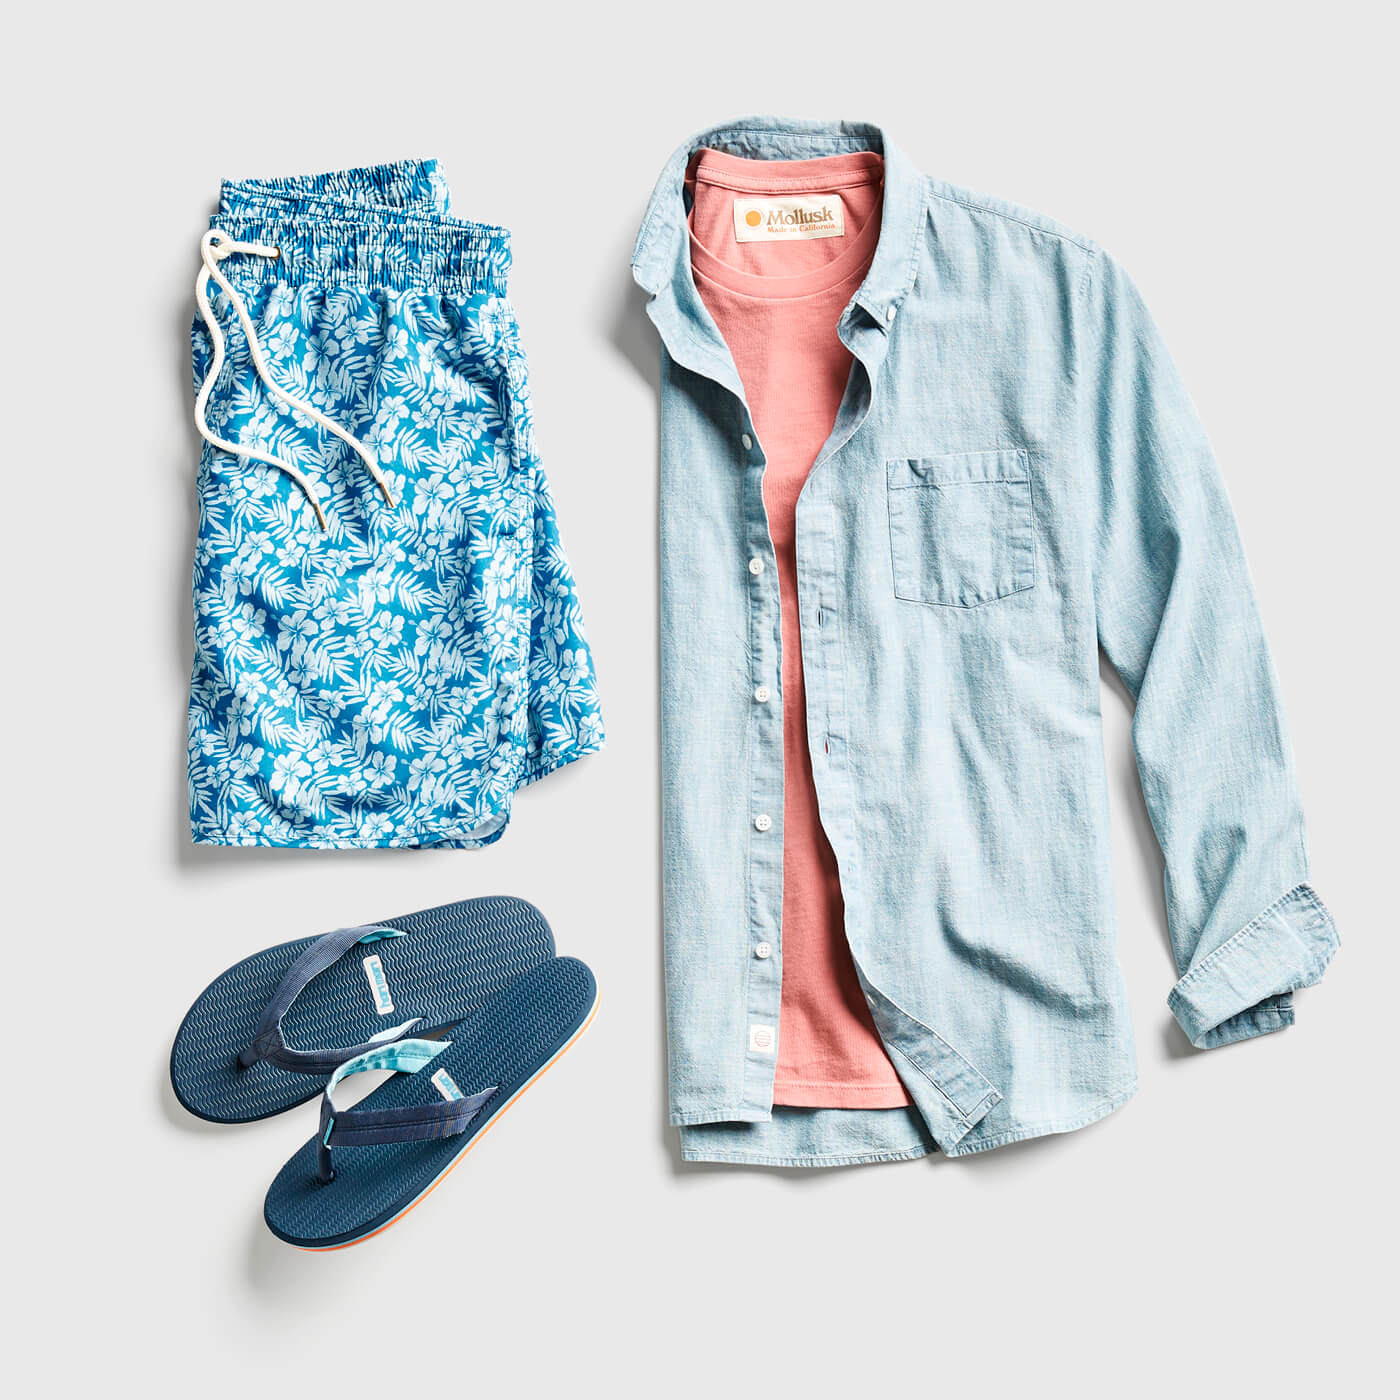 flip flops with swim trunks and chambray shirt